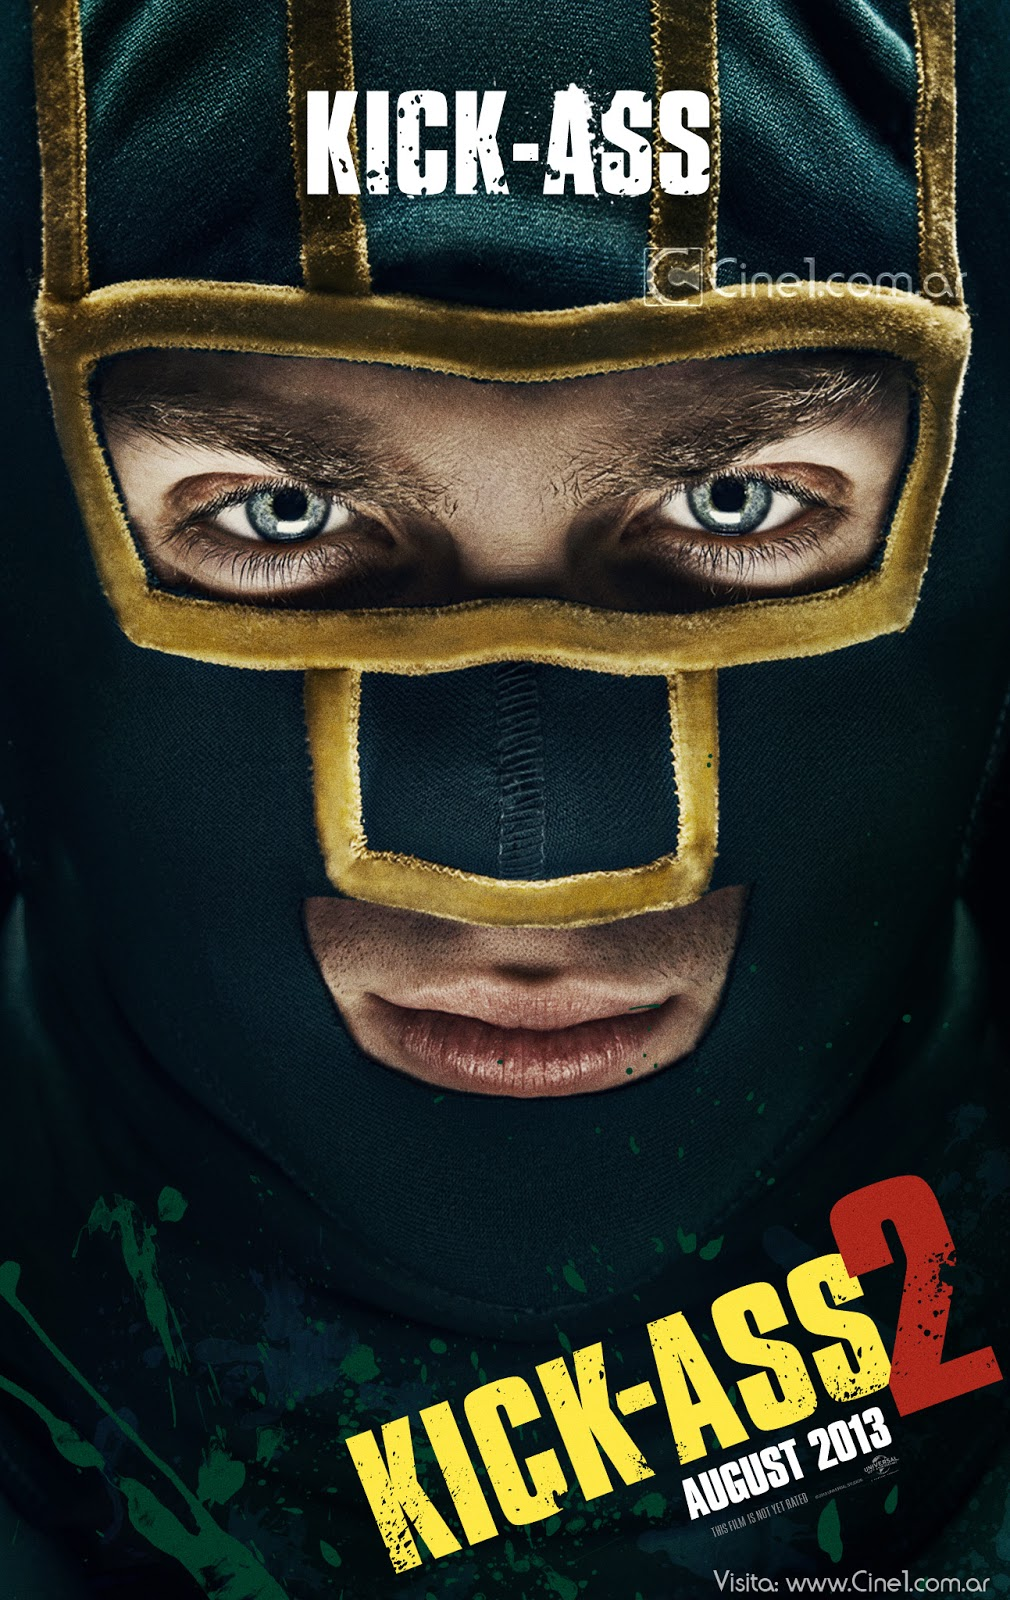 Kick Ass 2 Character Poster